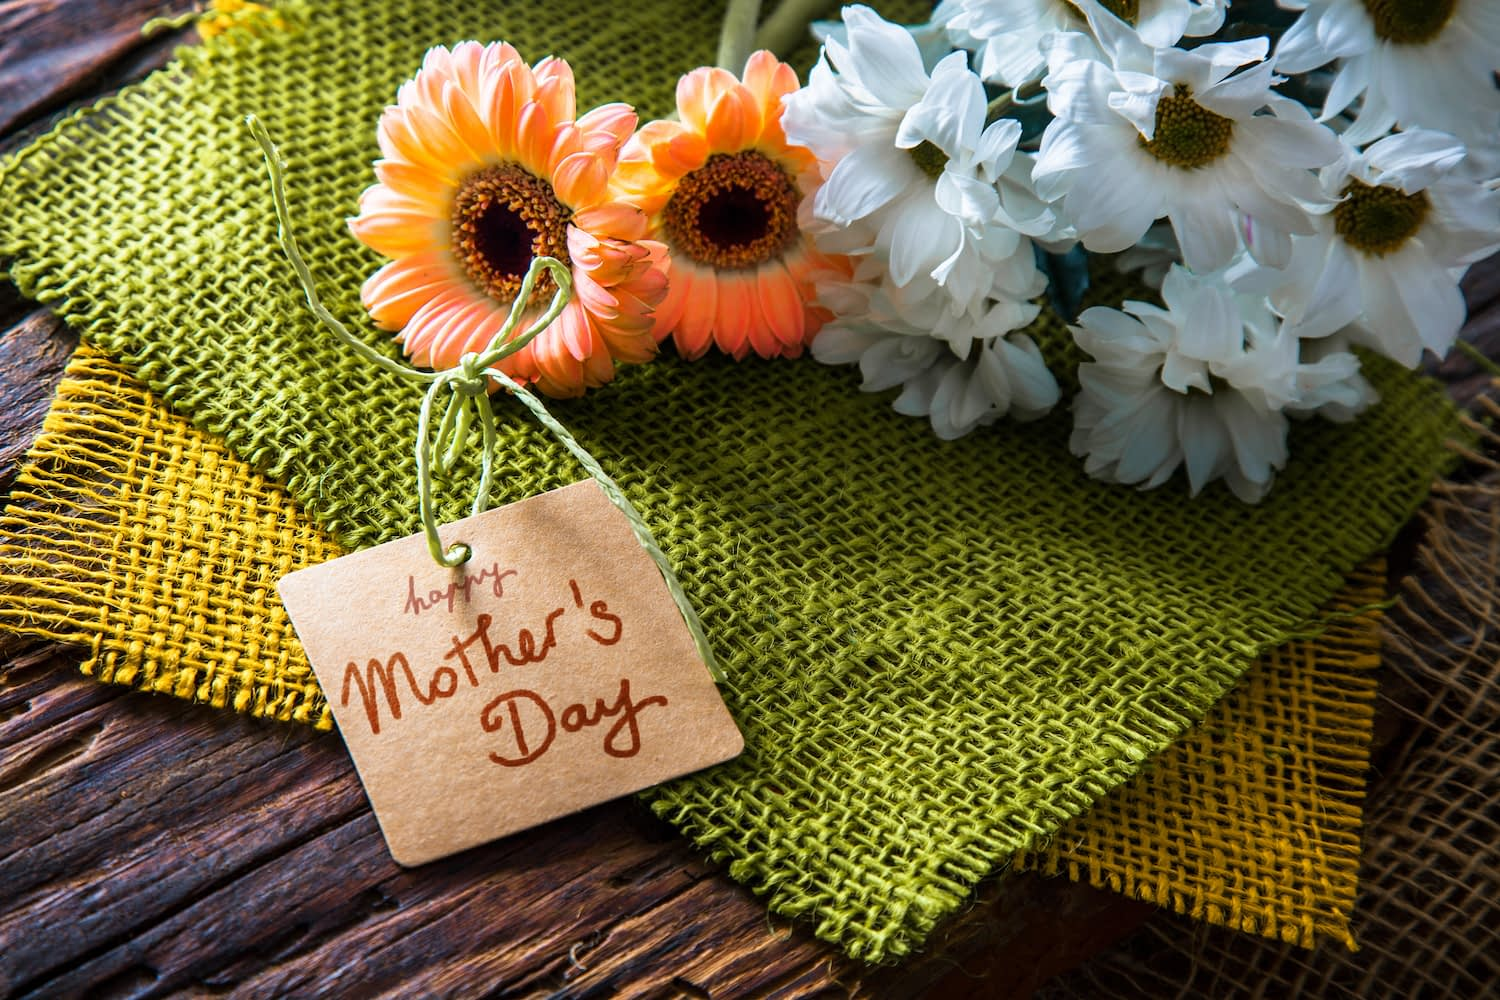 mother's day, flowers, mother's day gift, love, special occasion, card